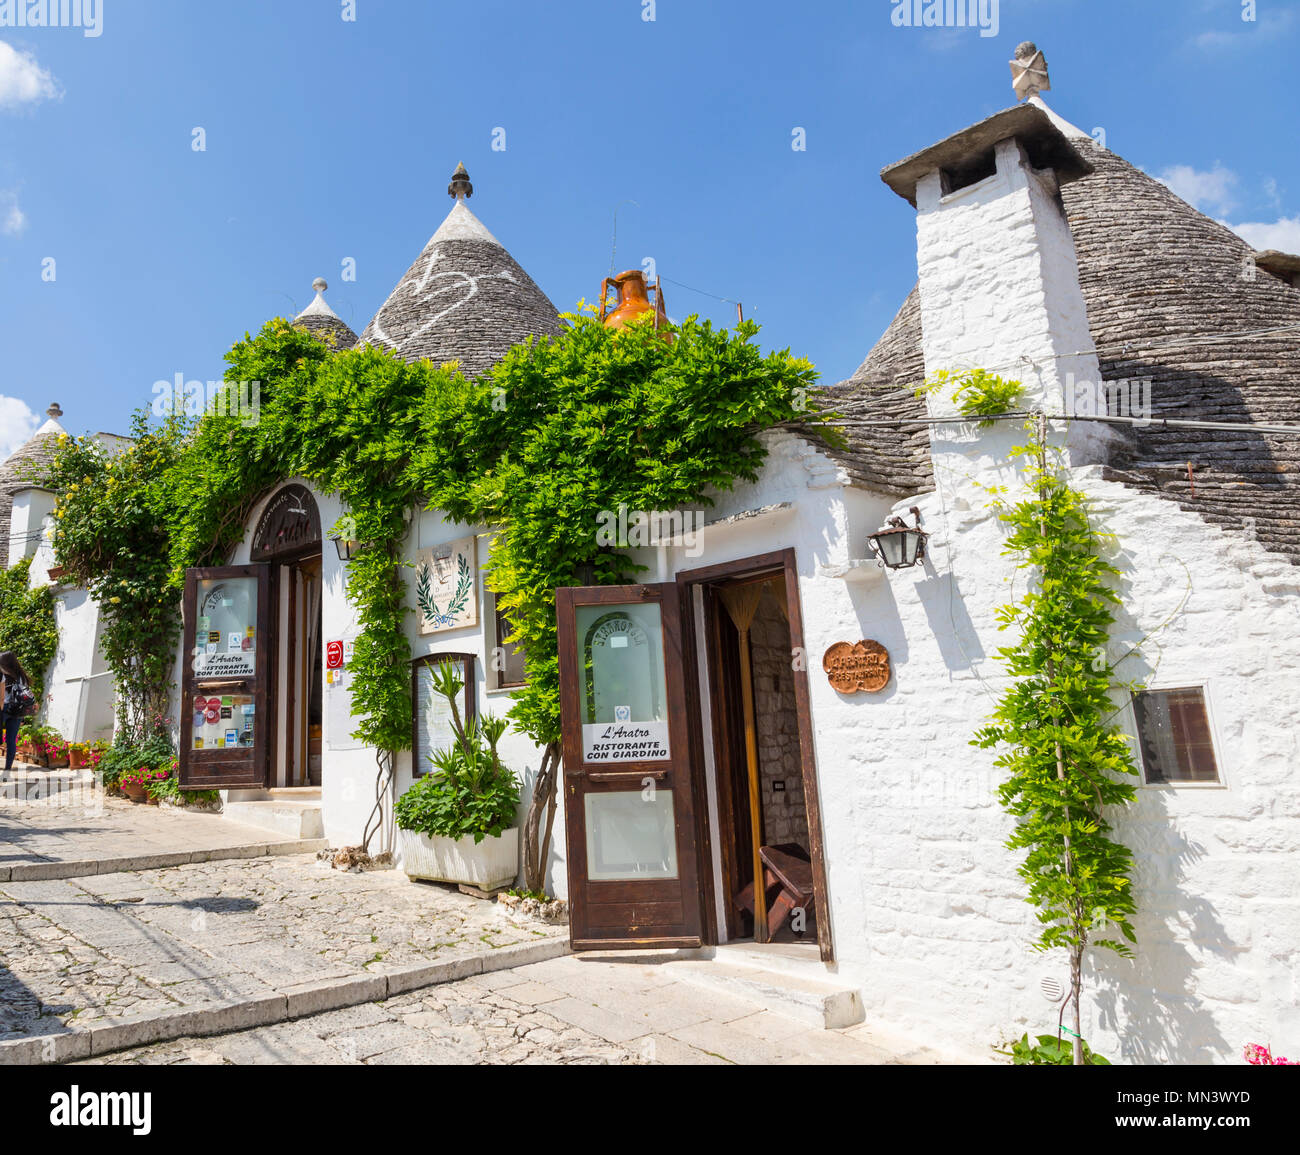 Ristoranti Alberobello Trulli Homes In Alberobello Italy Stock Photo 185097681 Alamy